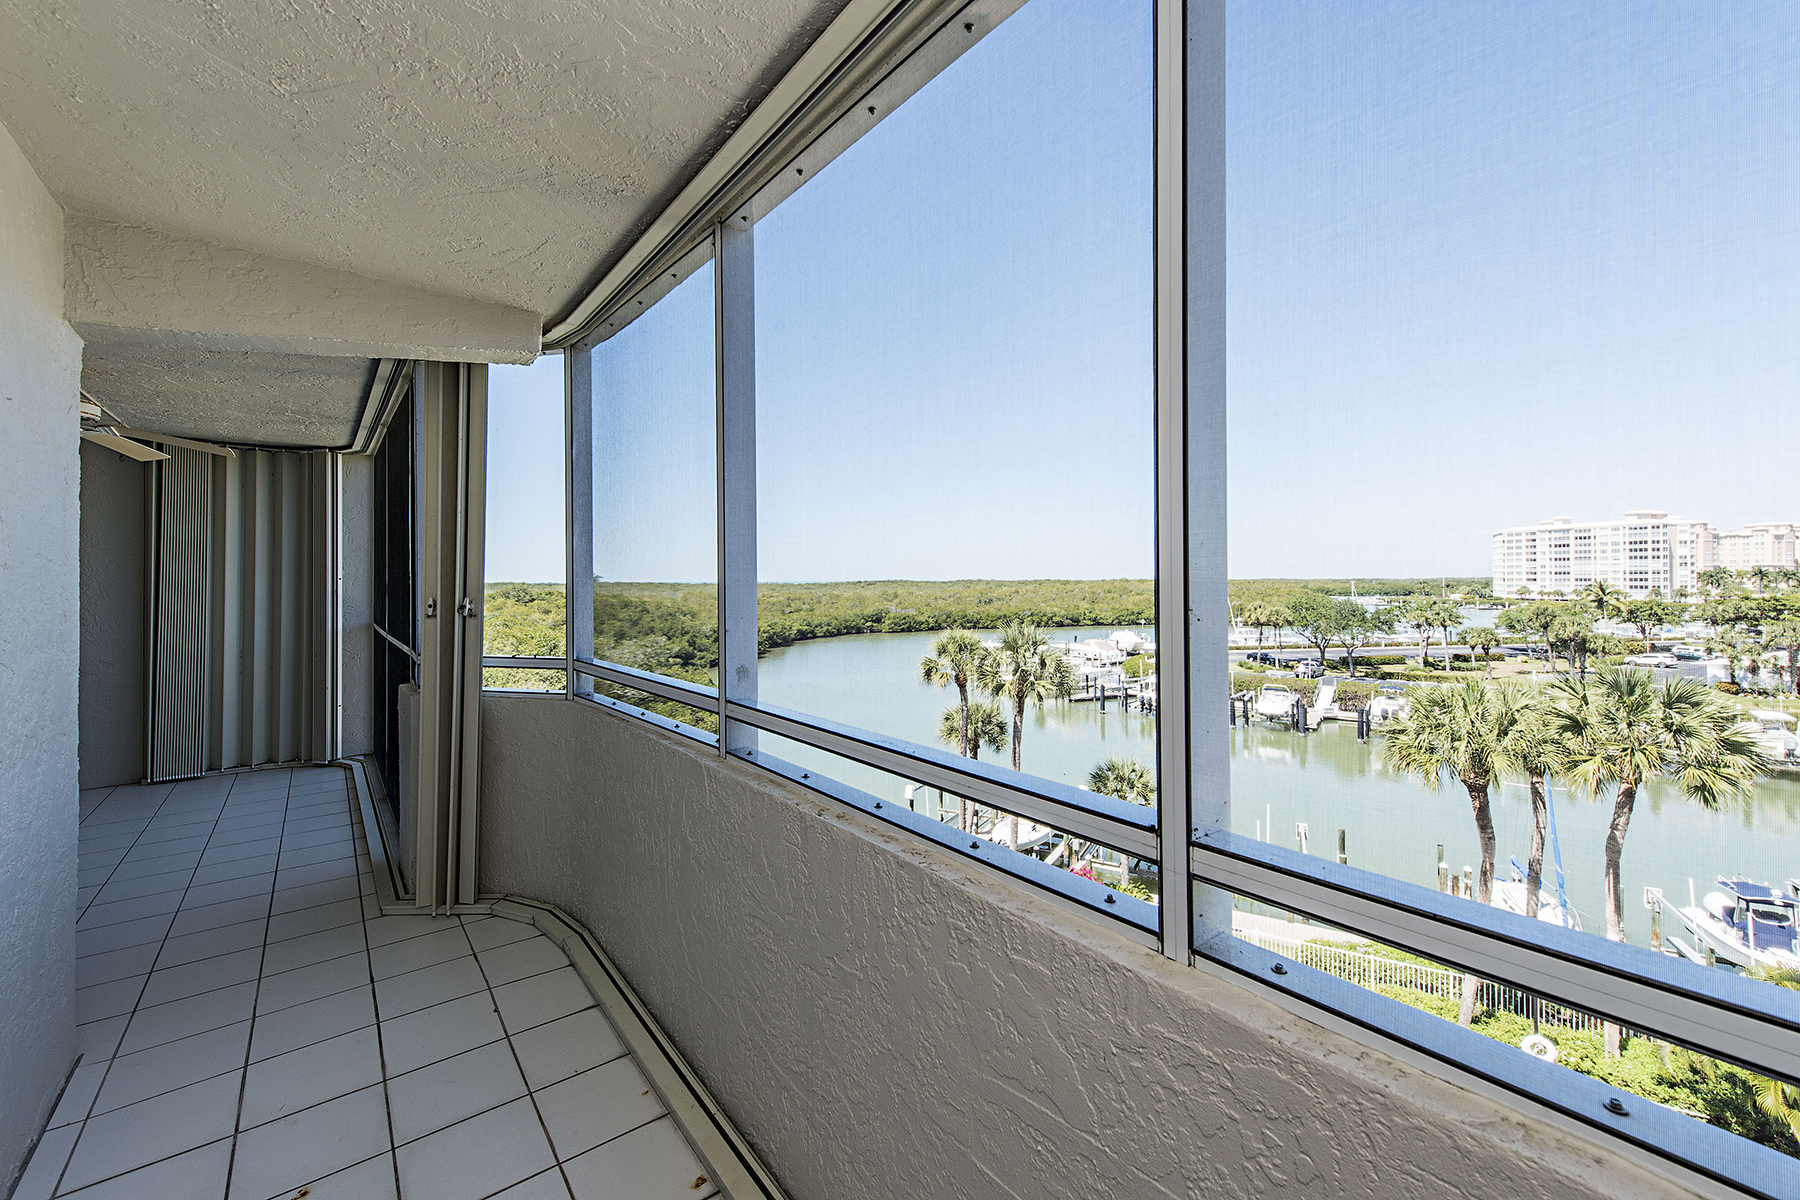 Condominium for Sale at ANCHORAGE AT VANDERBILT 12945 Vanderbilt Dr 504, Naples, Florida 34110 United States